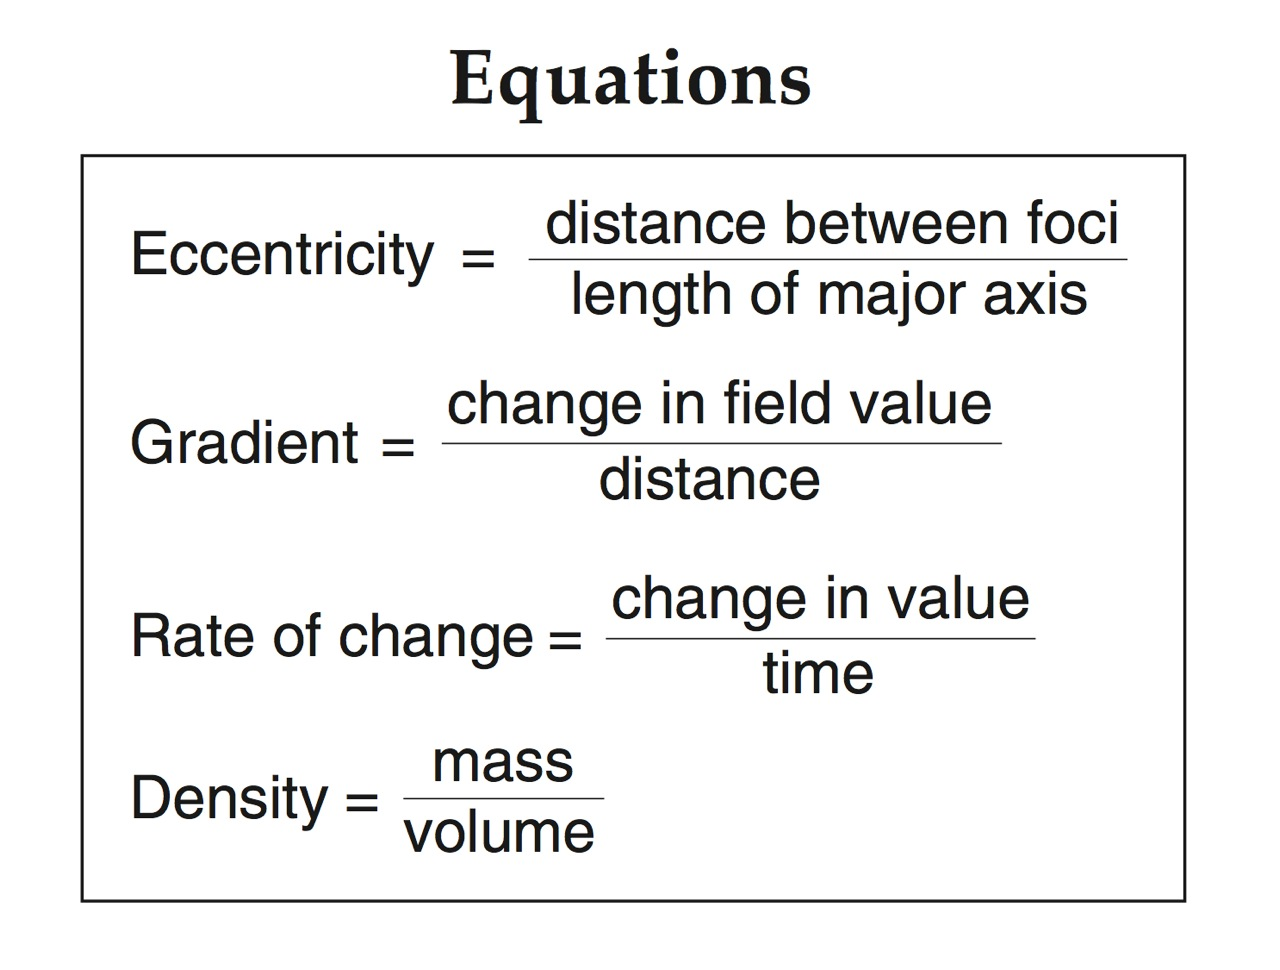 Eccentricity Worksheet Earth Science